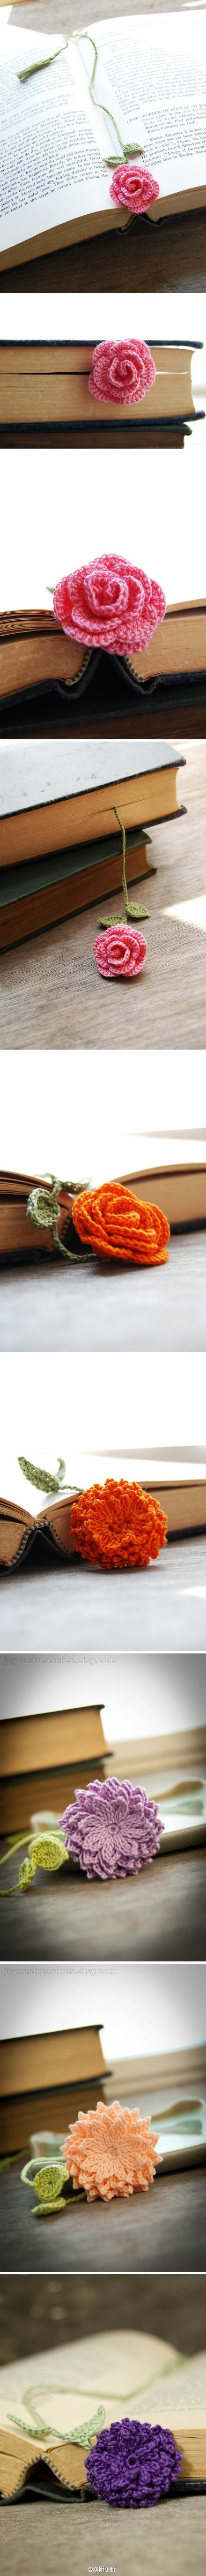 Bookmark Flower